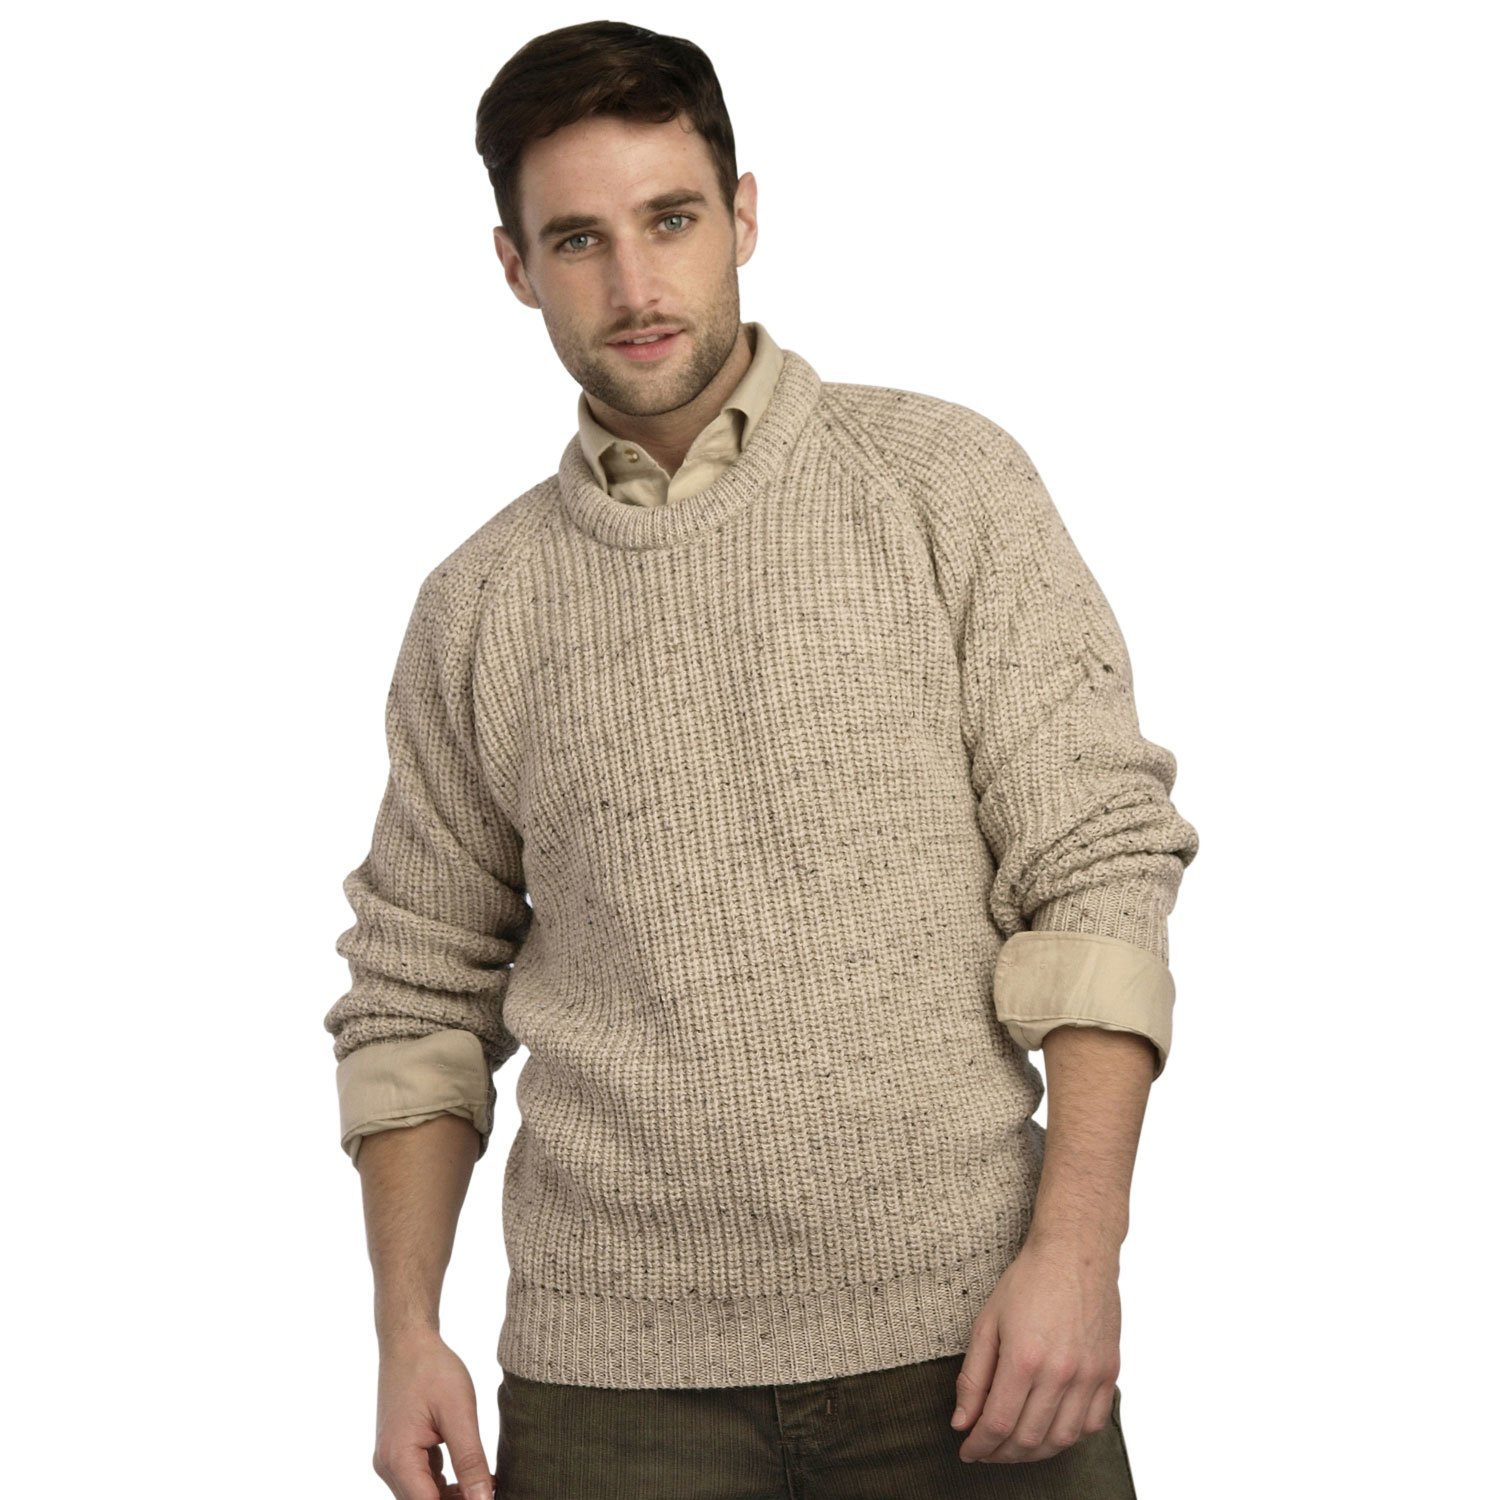 100% Pure Irish Wool Fishermans Rib Crew Neck Sweater by West End Knitwear